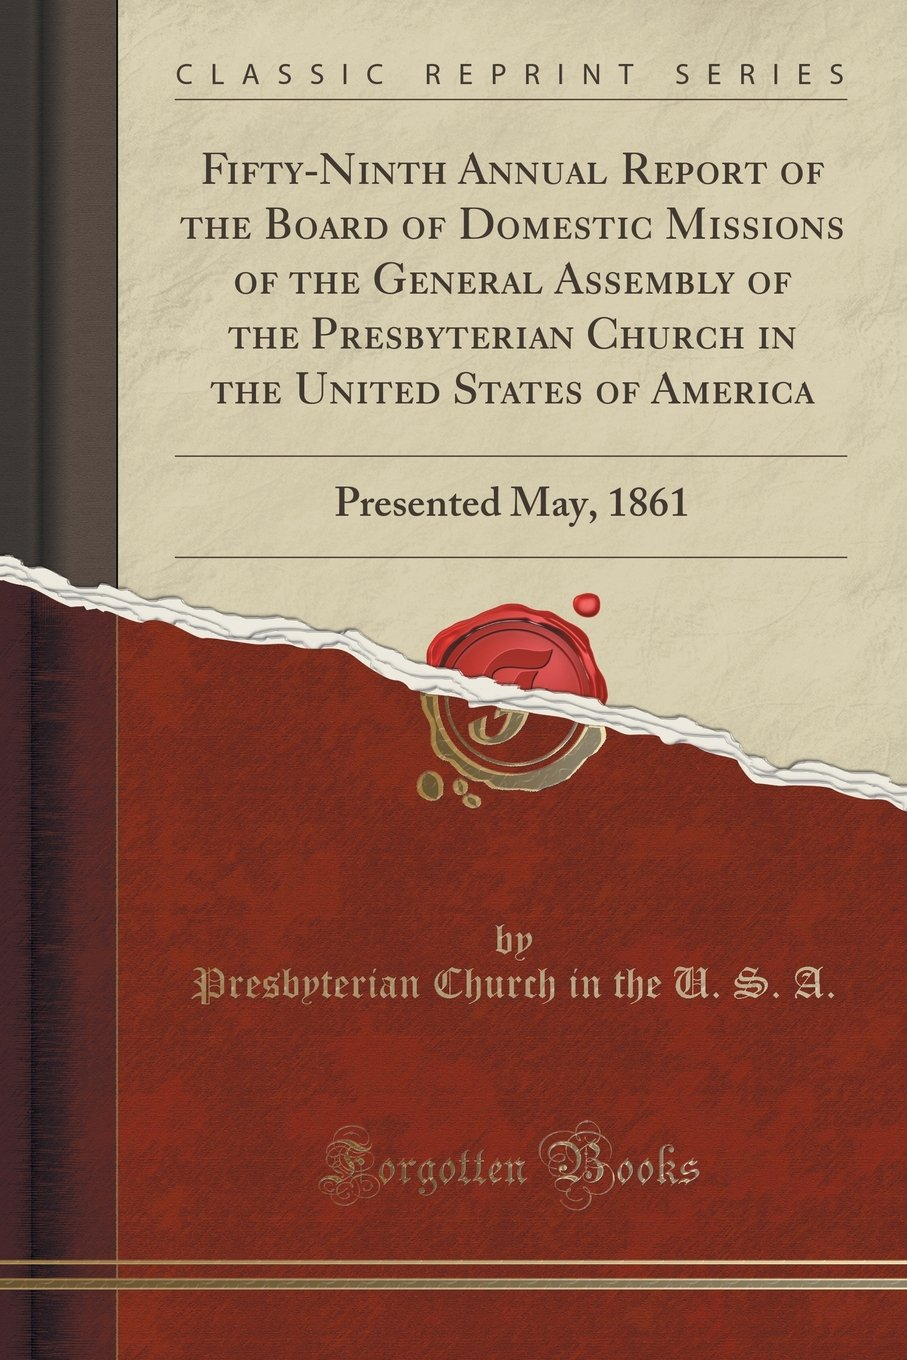 Fifty-Ninth Annual Report of the Board of Domestic Missions of the General Assembly of the Presbyterian Church in the United States of America: Presented May, 1861 (Classic Reprint) pdf